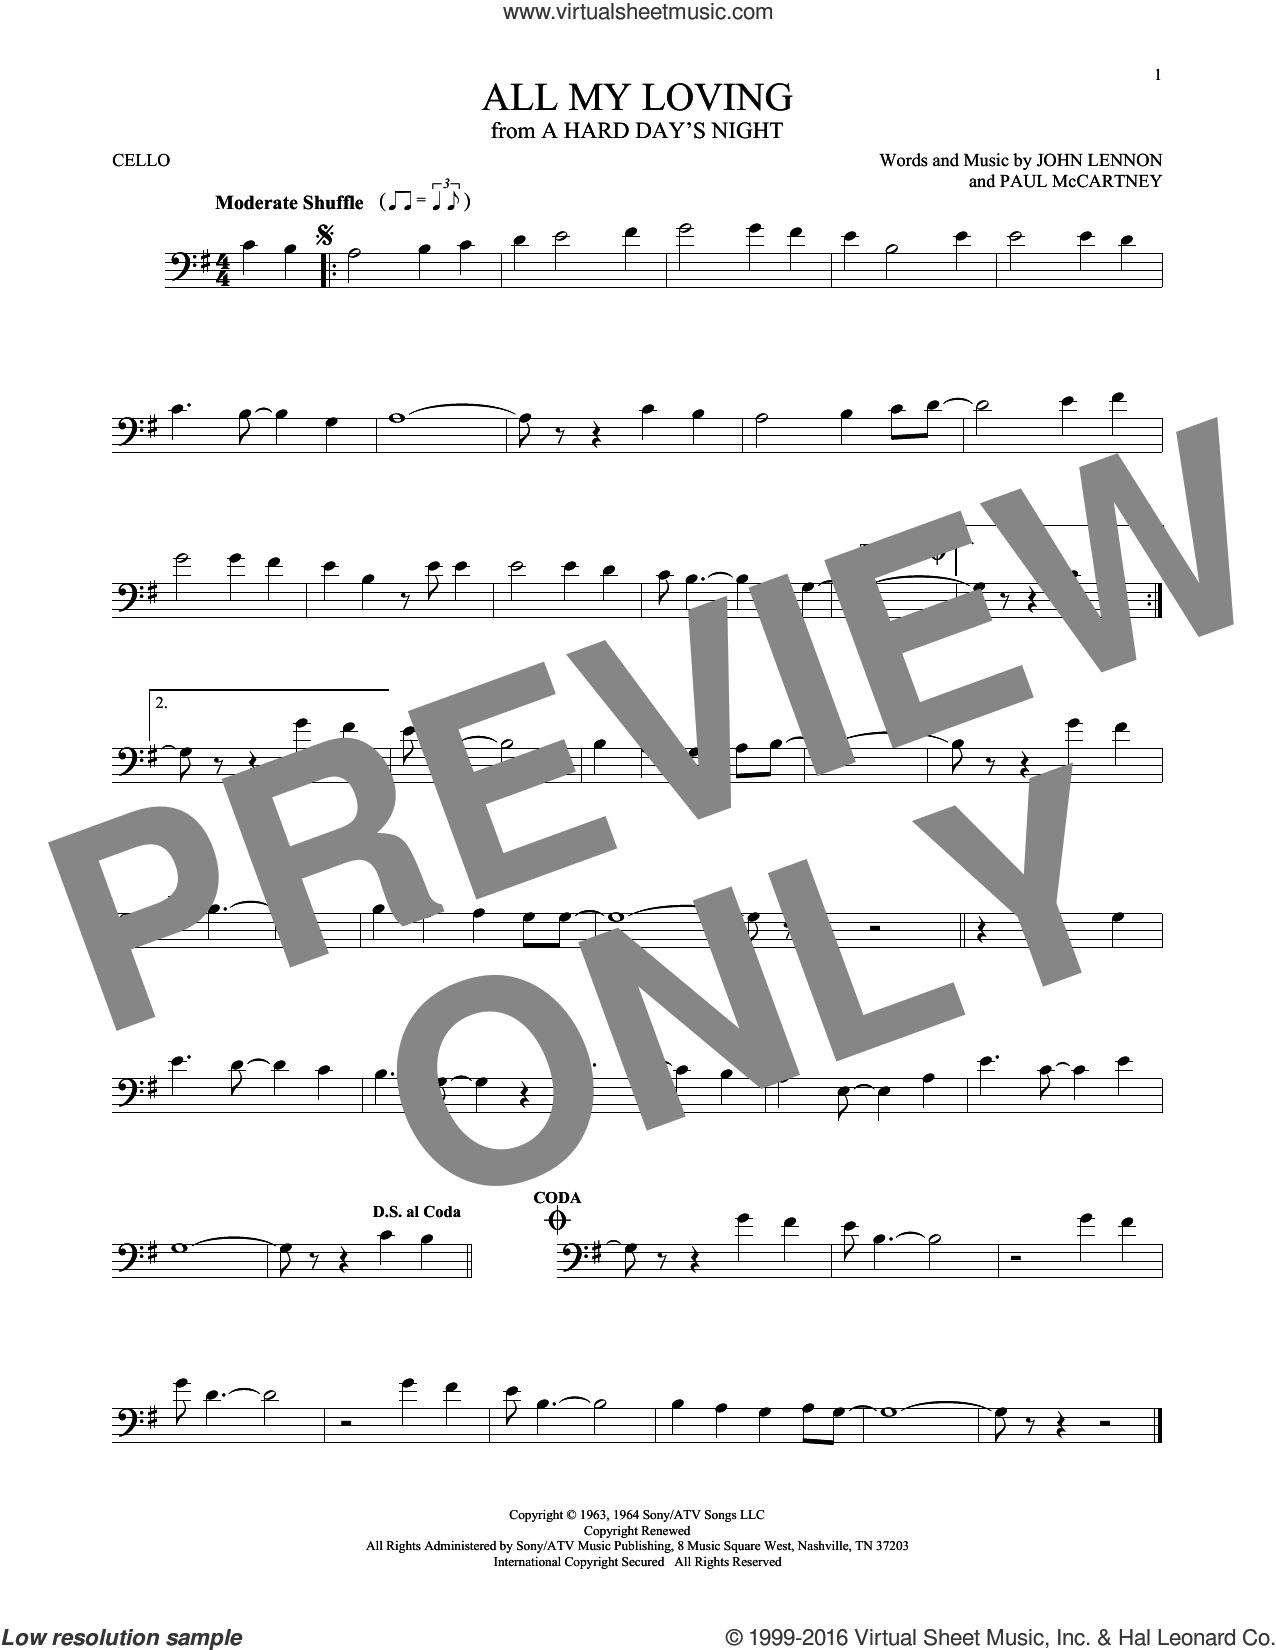 All My Loving sheet music for cello solo by The Beatles, John Lennon and Paul McCartney, intermediate skill level